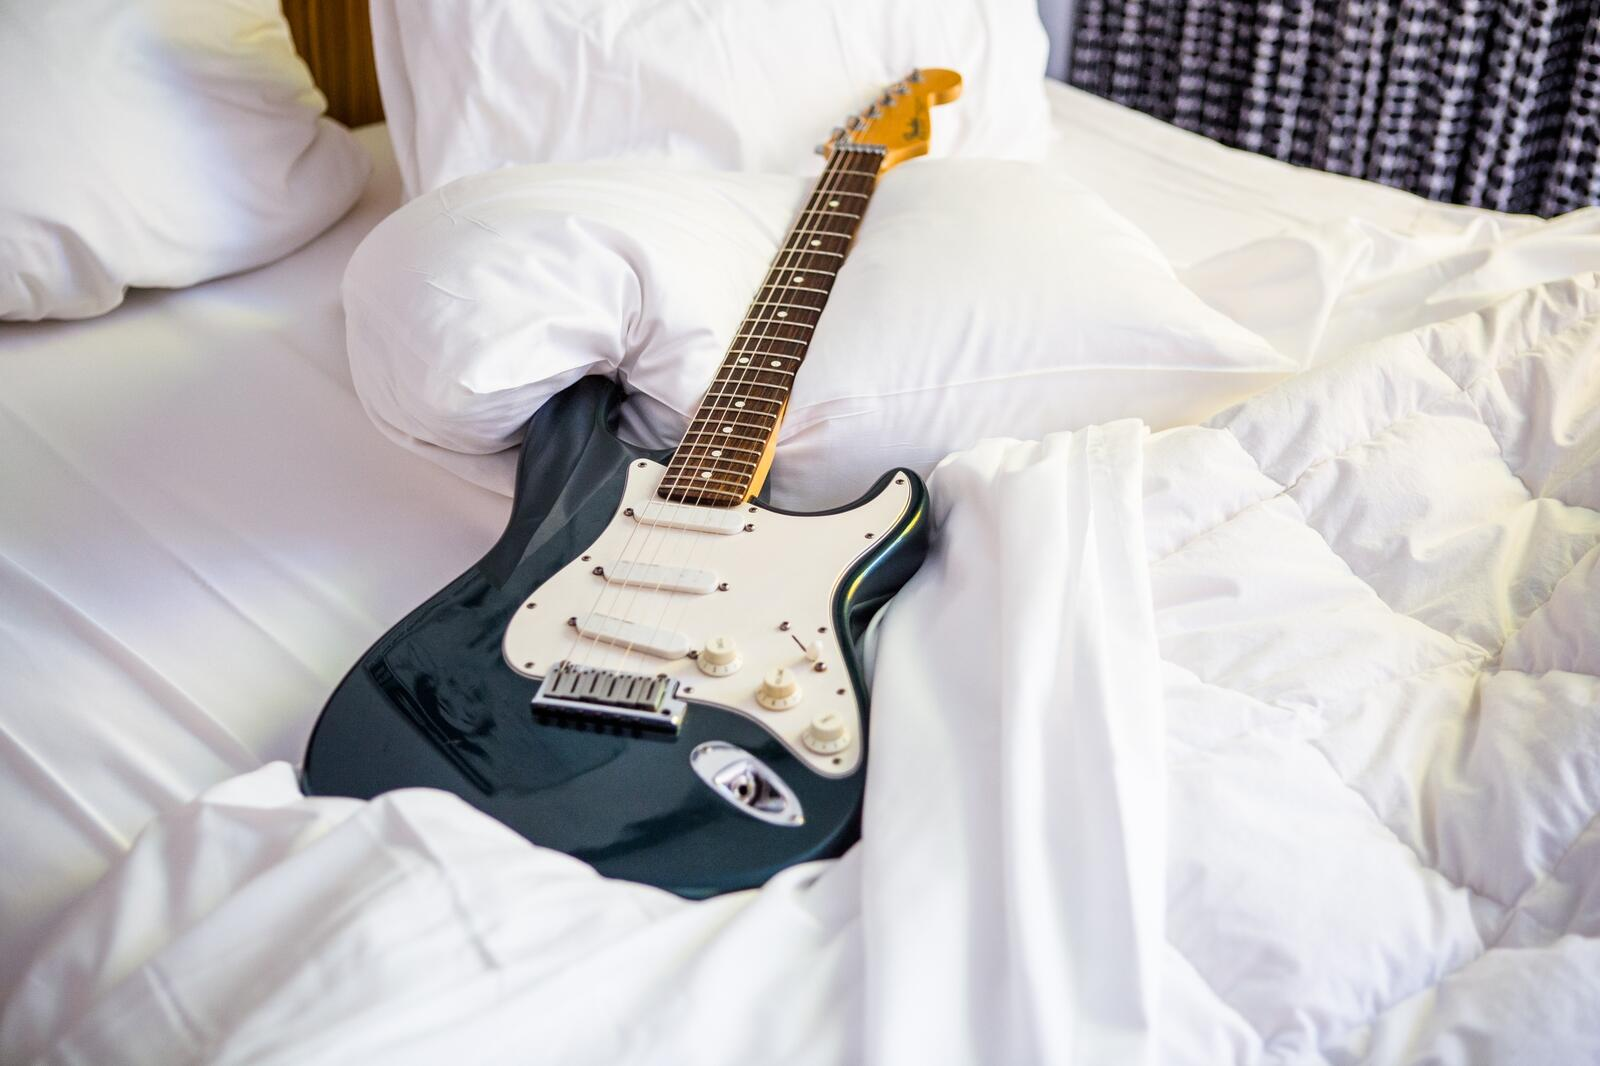 Electric guitar on unmade bed